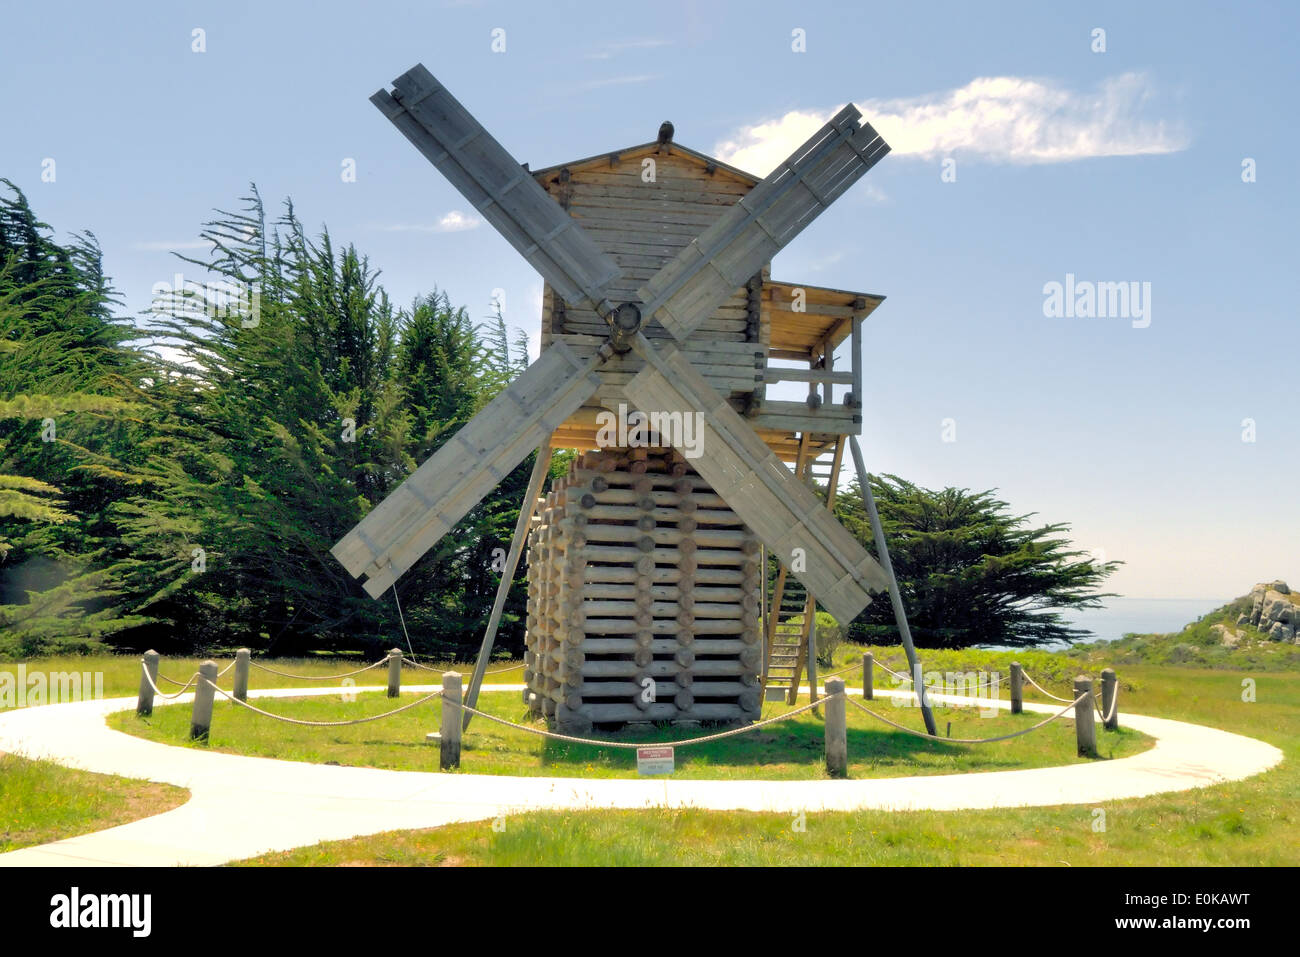 A wooden windmill - Stock Image